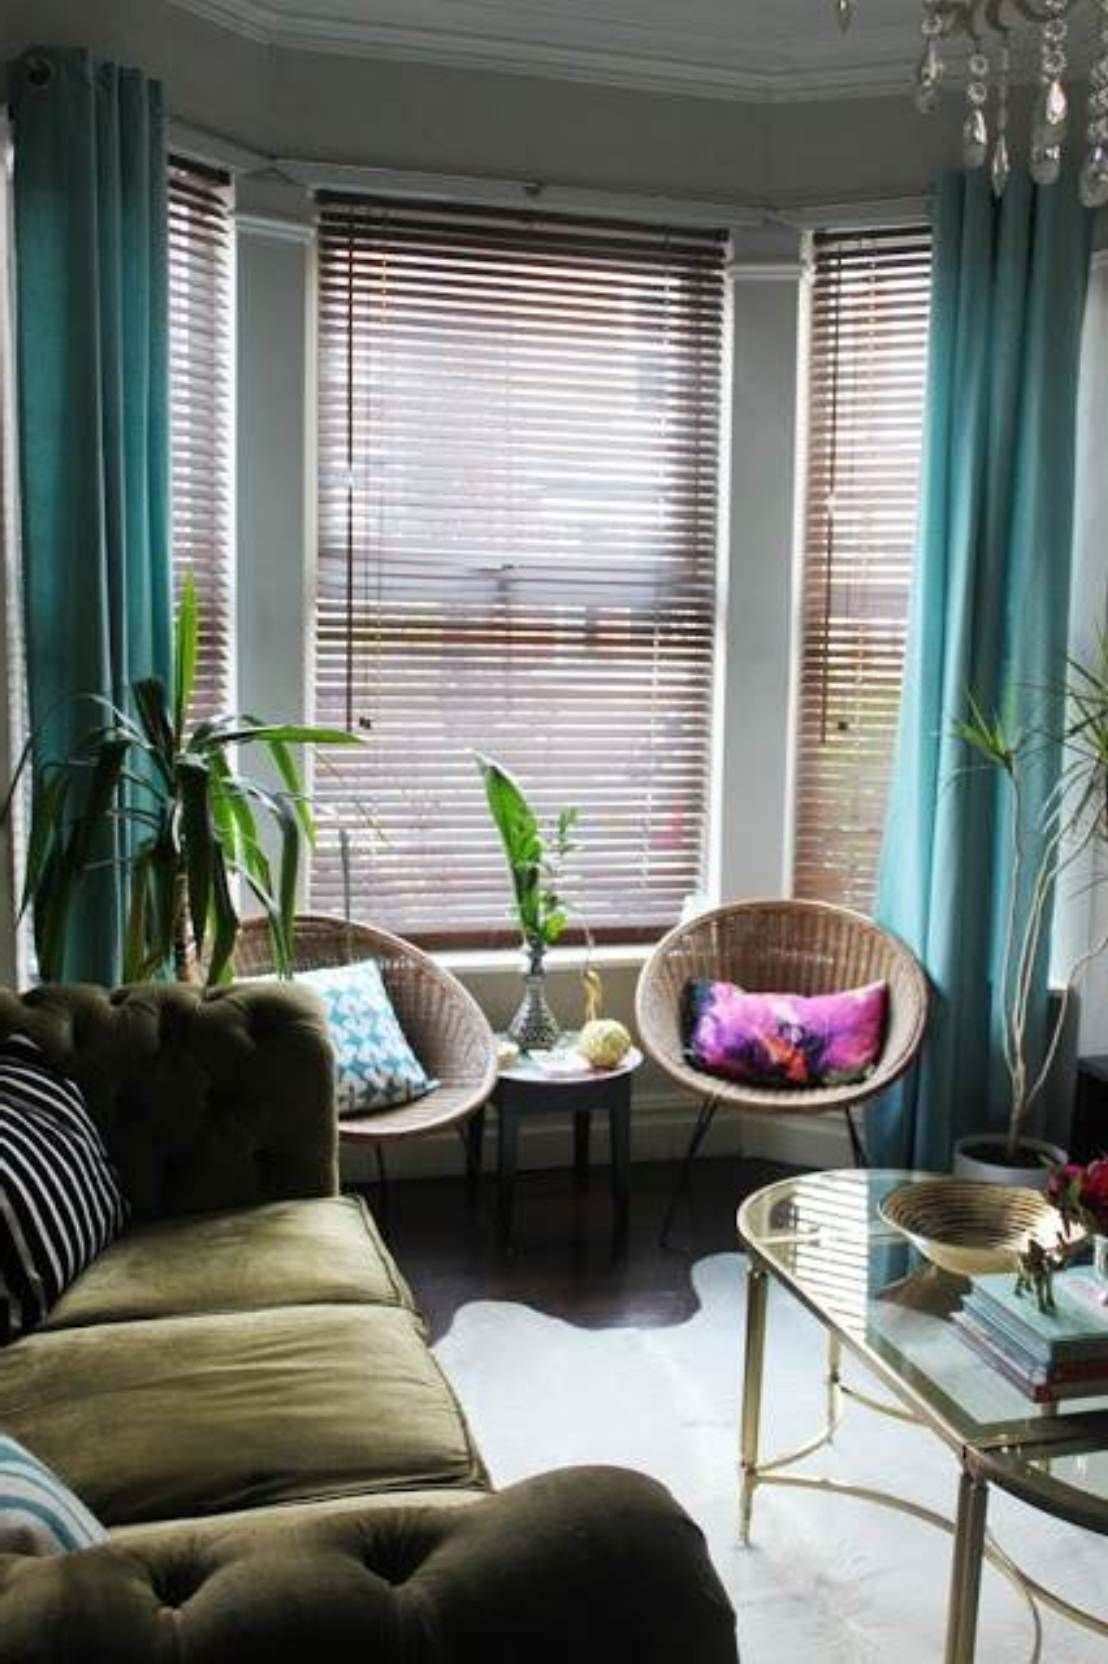 50 Curtain Ideas For Bay Windows In Living Room 2021 In 2020